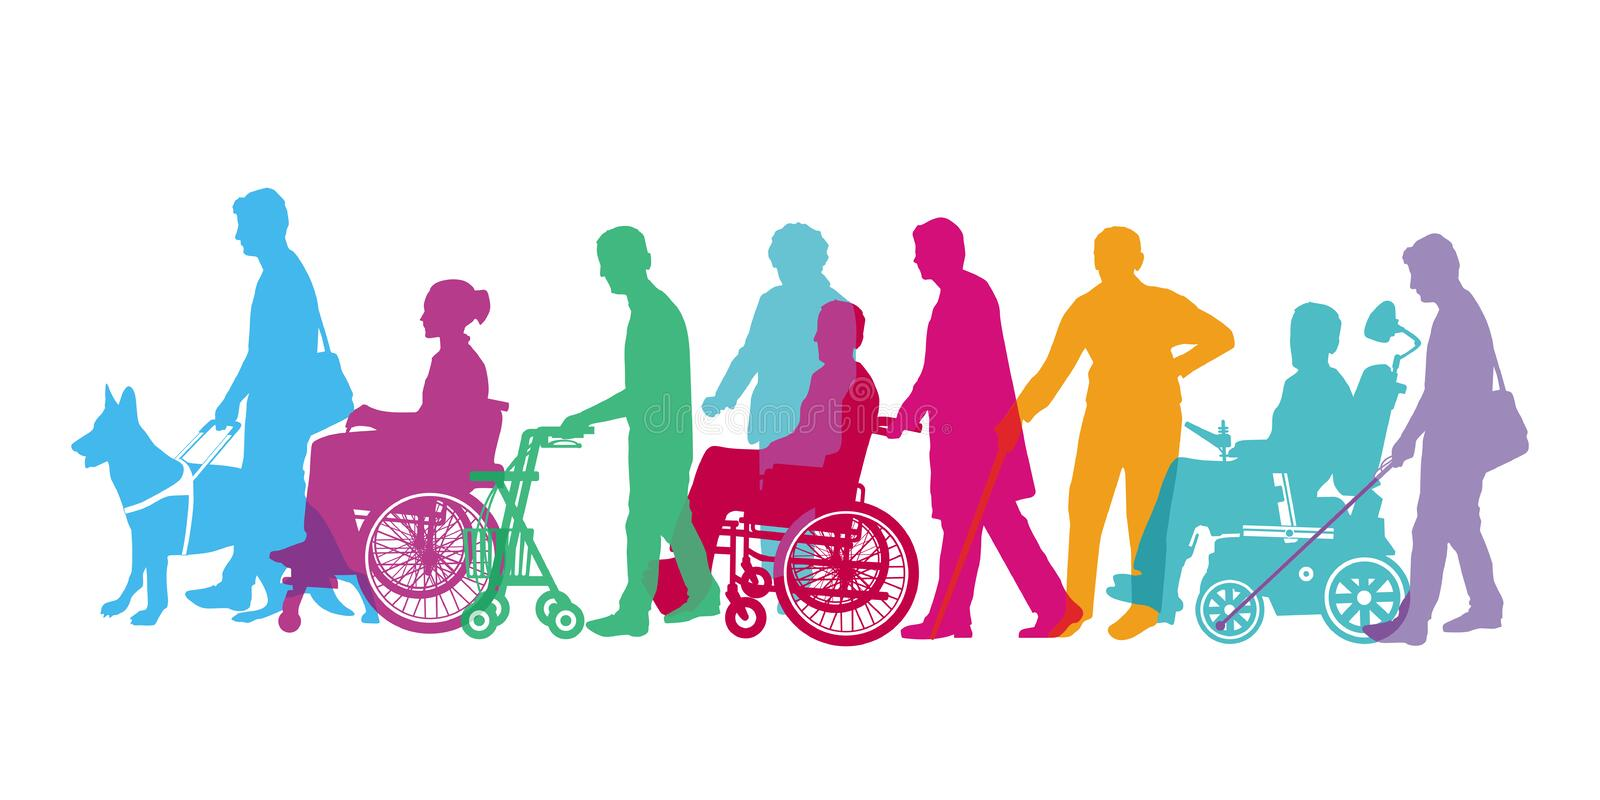 Disabled people. Silhouettes of disabled people with wheelchairs and guide dogs royalty free stock image